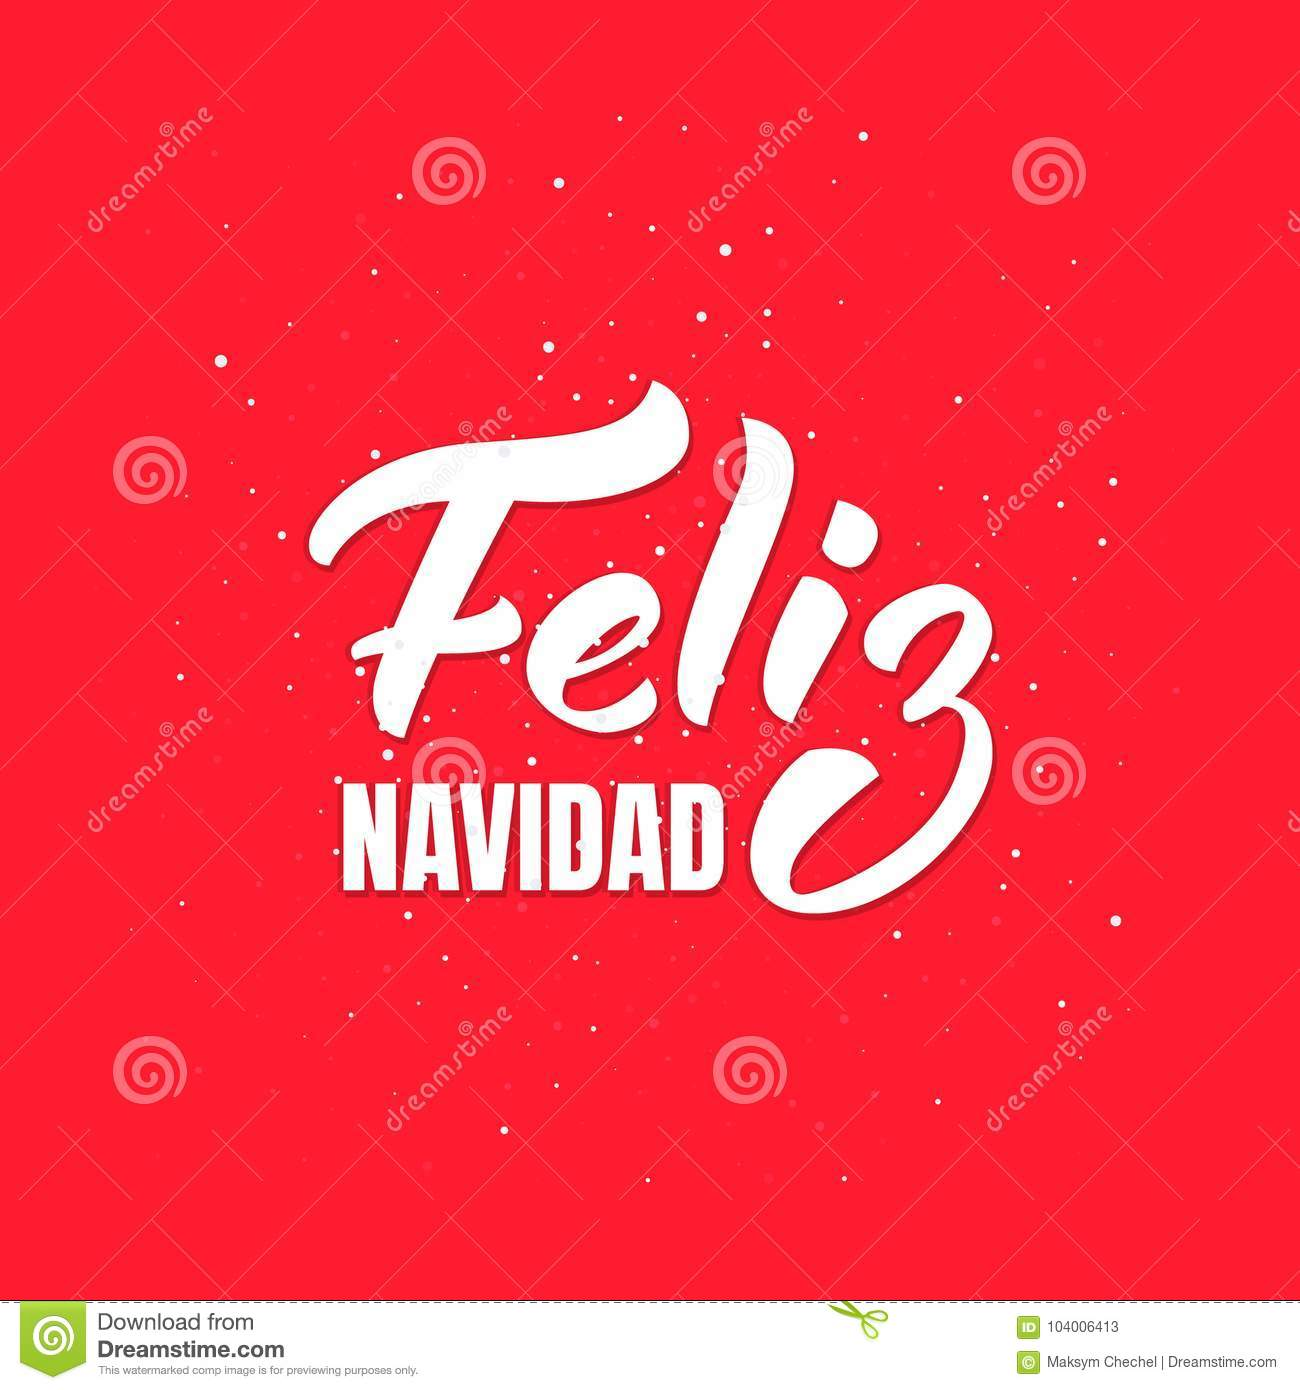 Feliz navidad merry christmas spanish text lettering design merry christmas spanish text lettering design holiday greeting card kristyandbryce Images